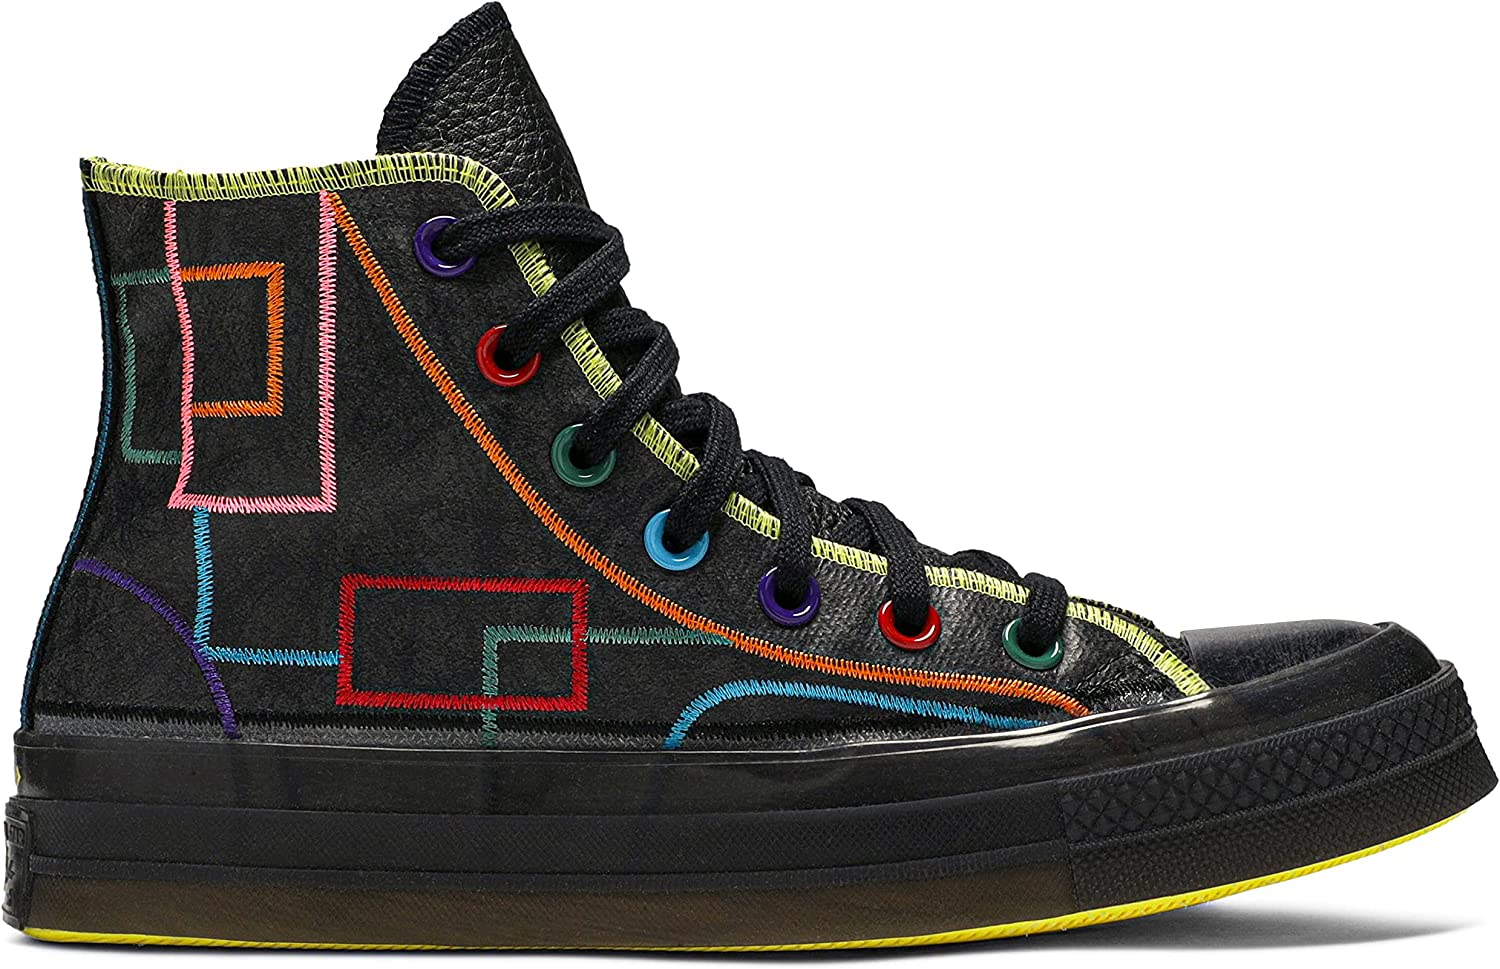 Converse Chuck 70 High Chinese New Year Sneakers B